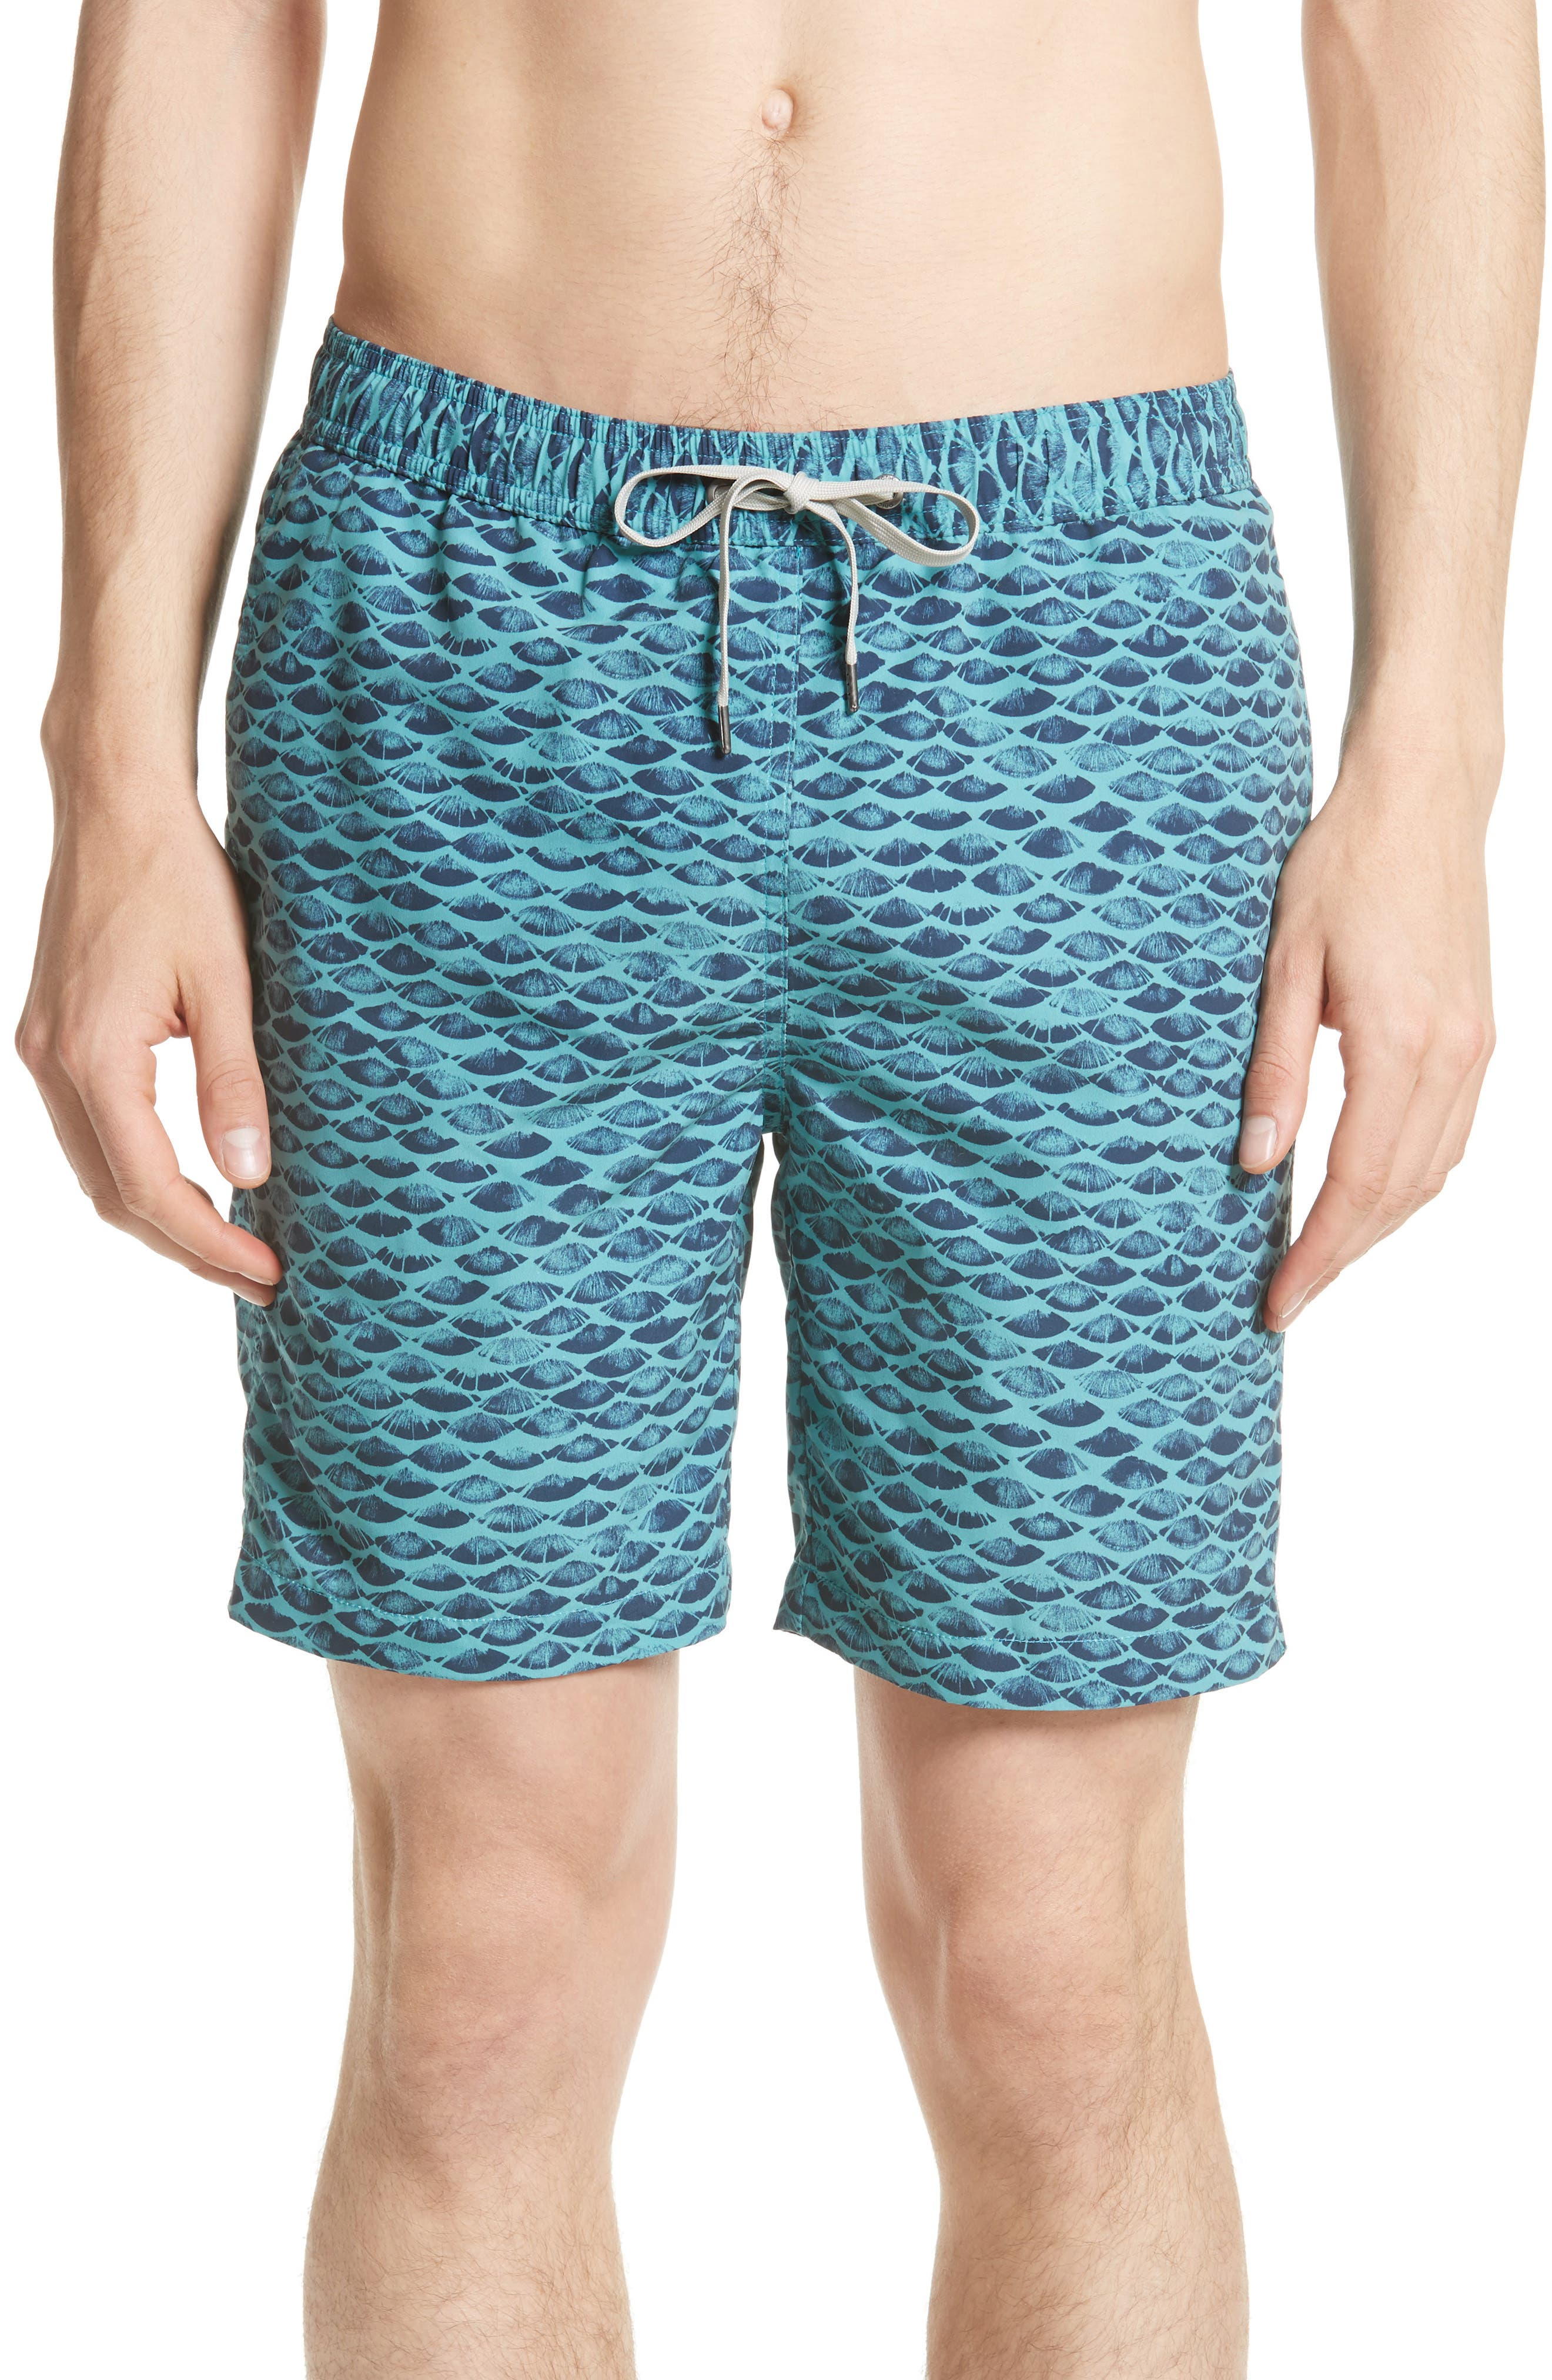 Charles Scales Swim Trunks,                         Main,                         color, 464